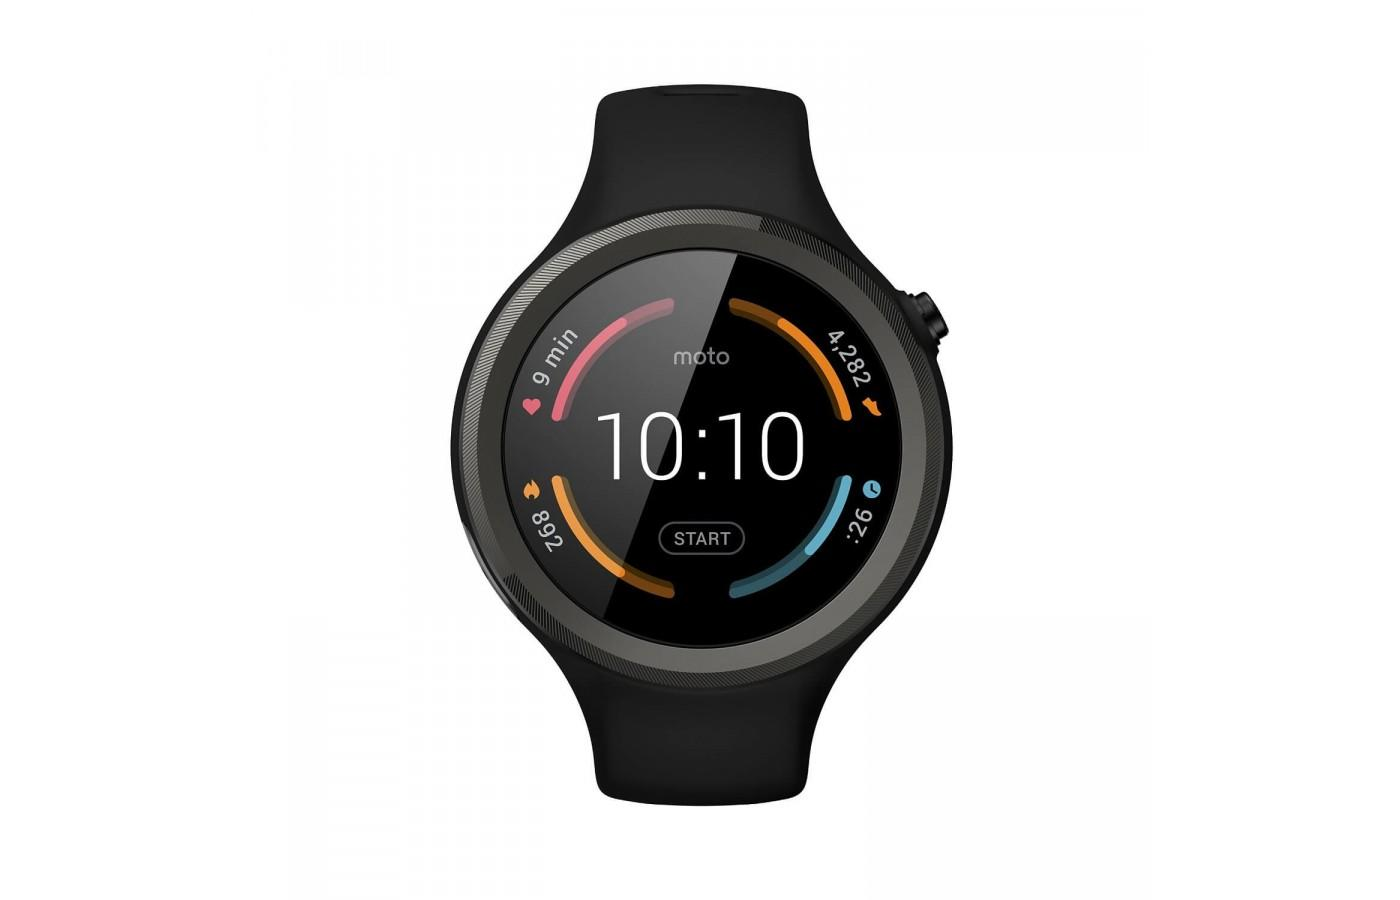 The Motorola Moto 360 Sport screen is made from Corning Gorilla Glass 3